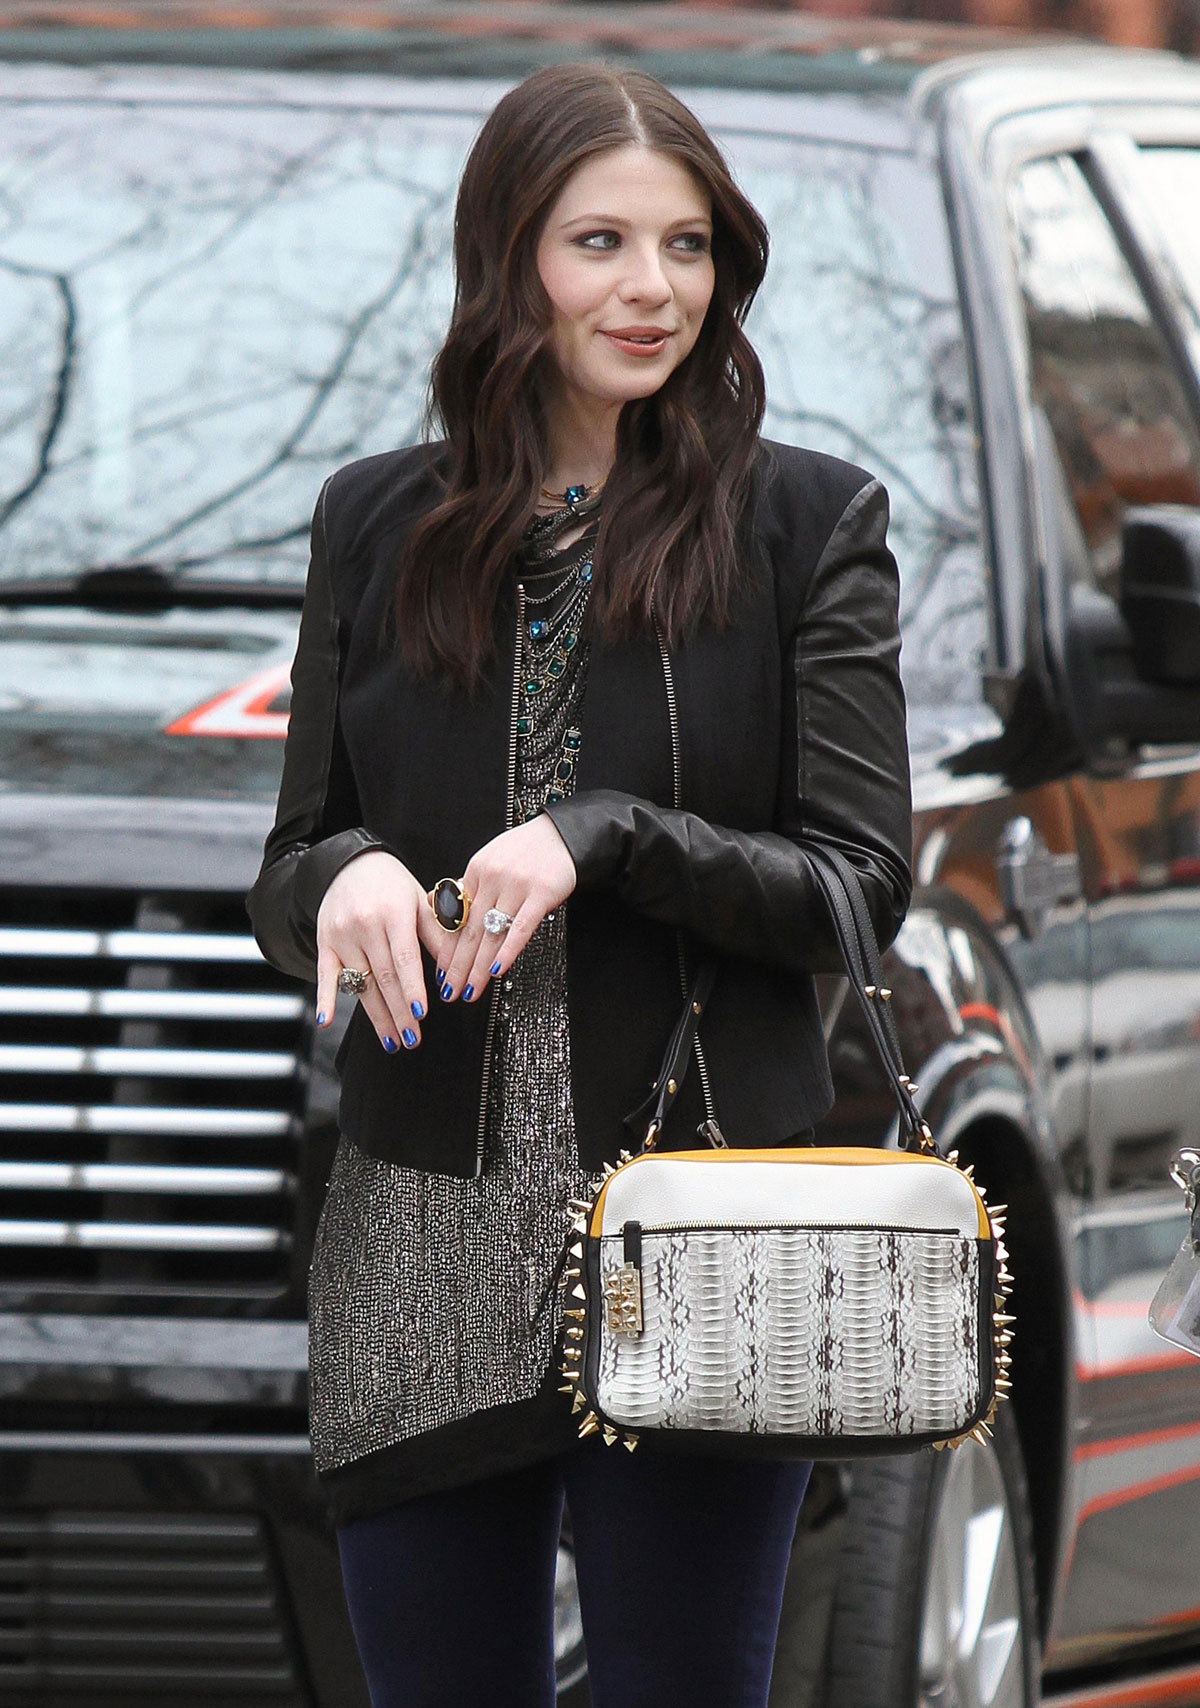 MICHELLE TRACHTENBERG on the Gossip Girl Set in New York 4 michelle trachtenberg on the gossip girl set in new york hawtcelebs